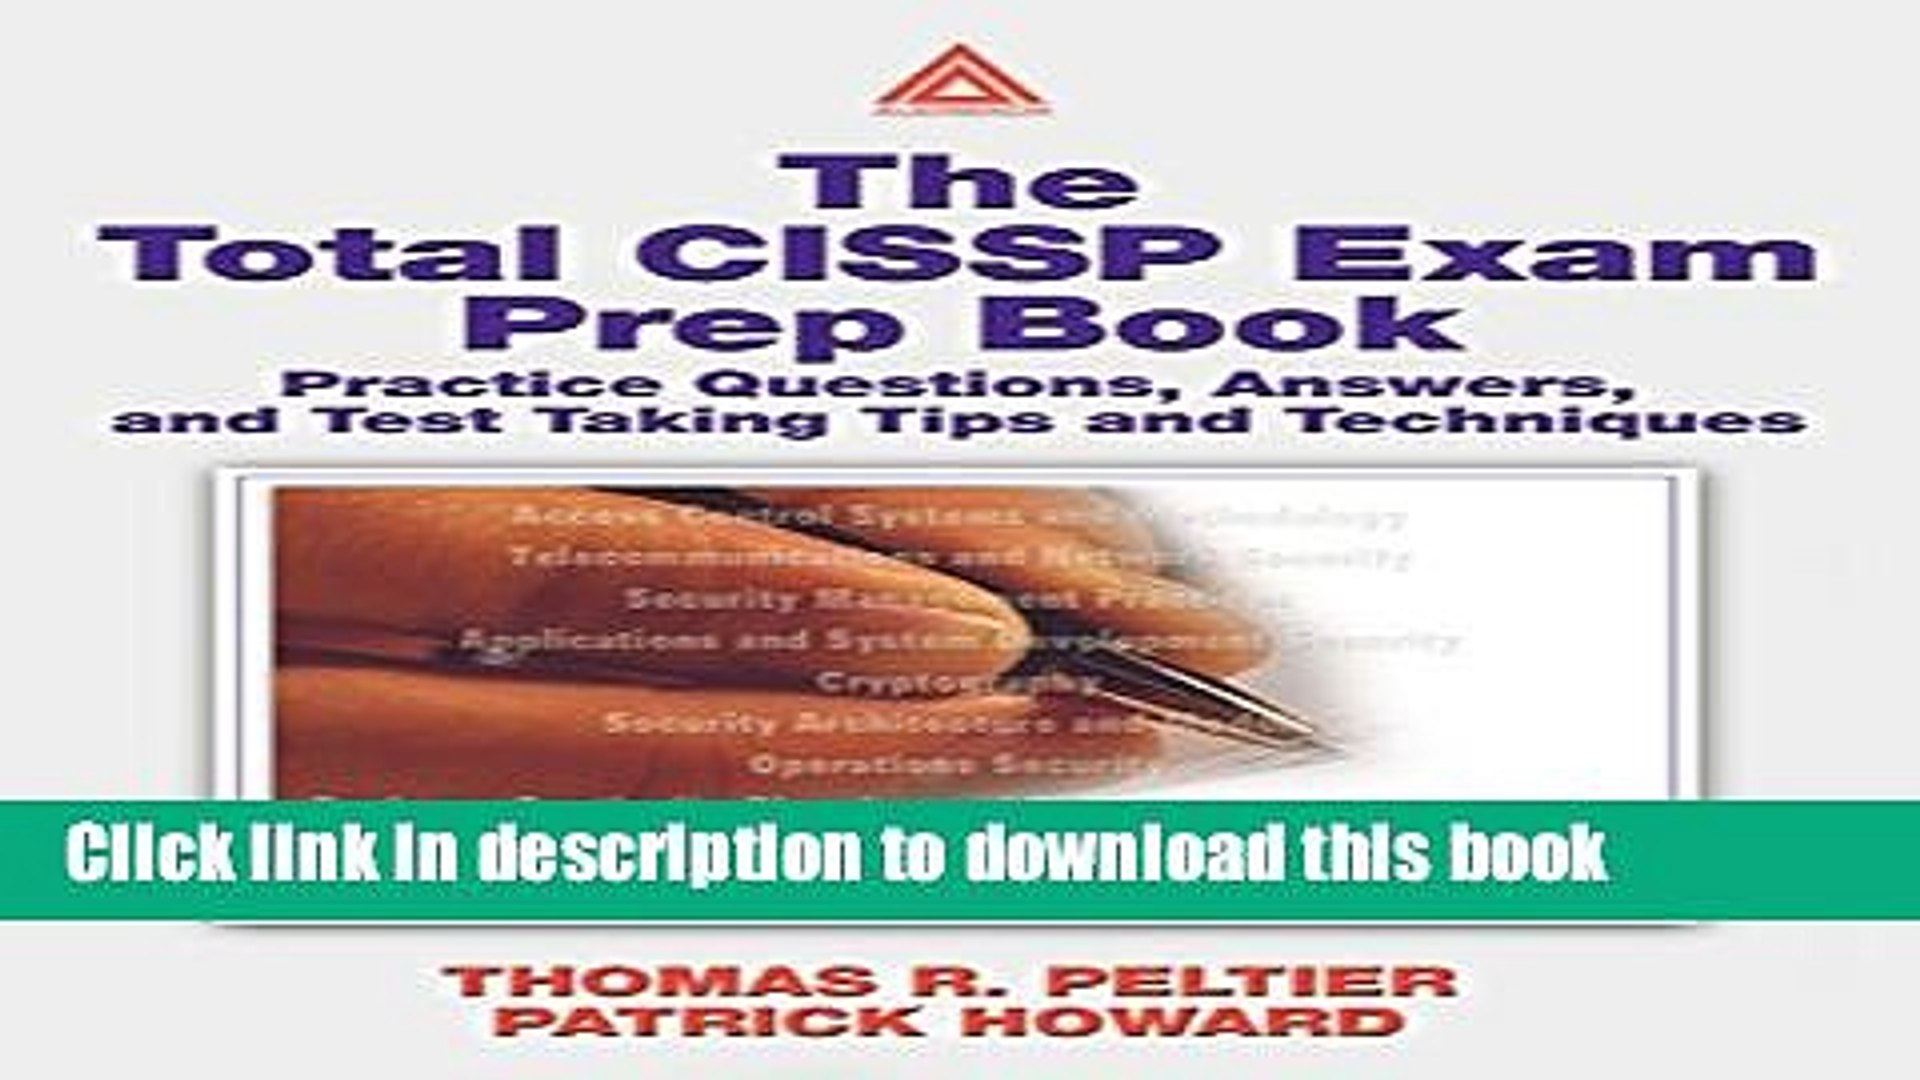 Books The Total CISSP Exam Prep Book: Practice Questions, Answers, and Test Taking Tips and